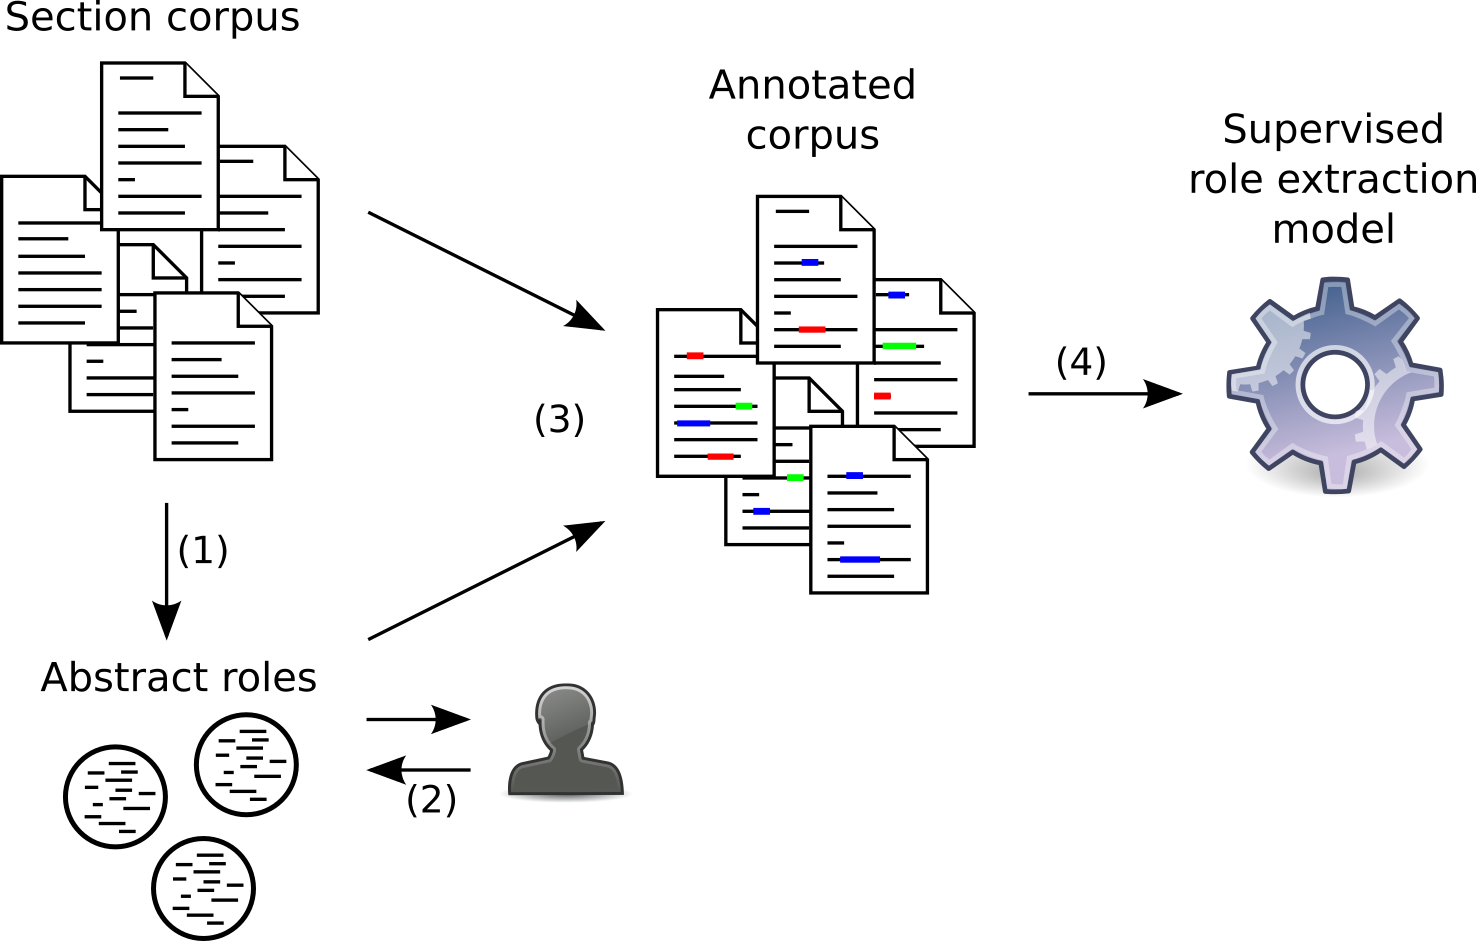 The workflow of author contributions extraction